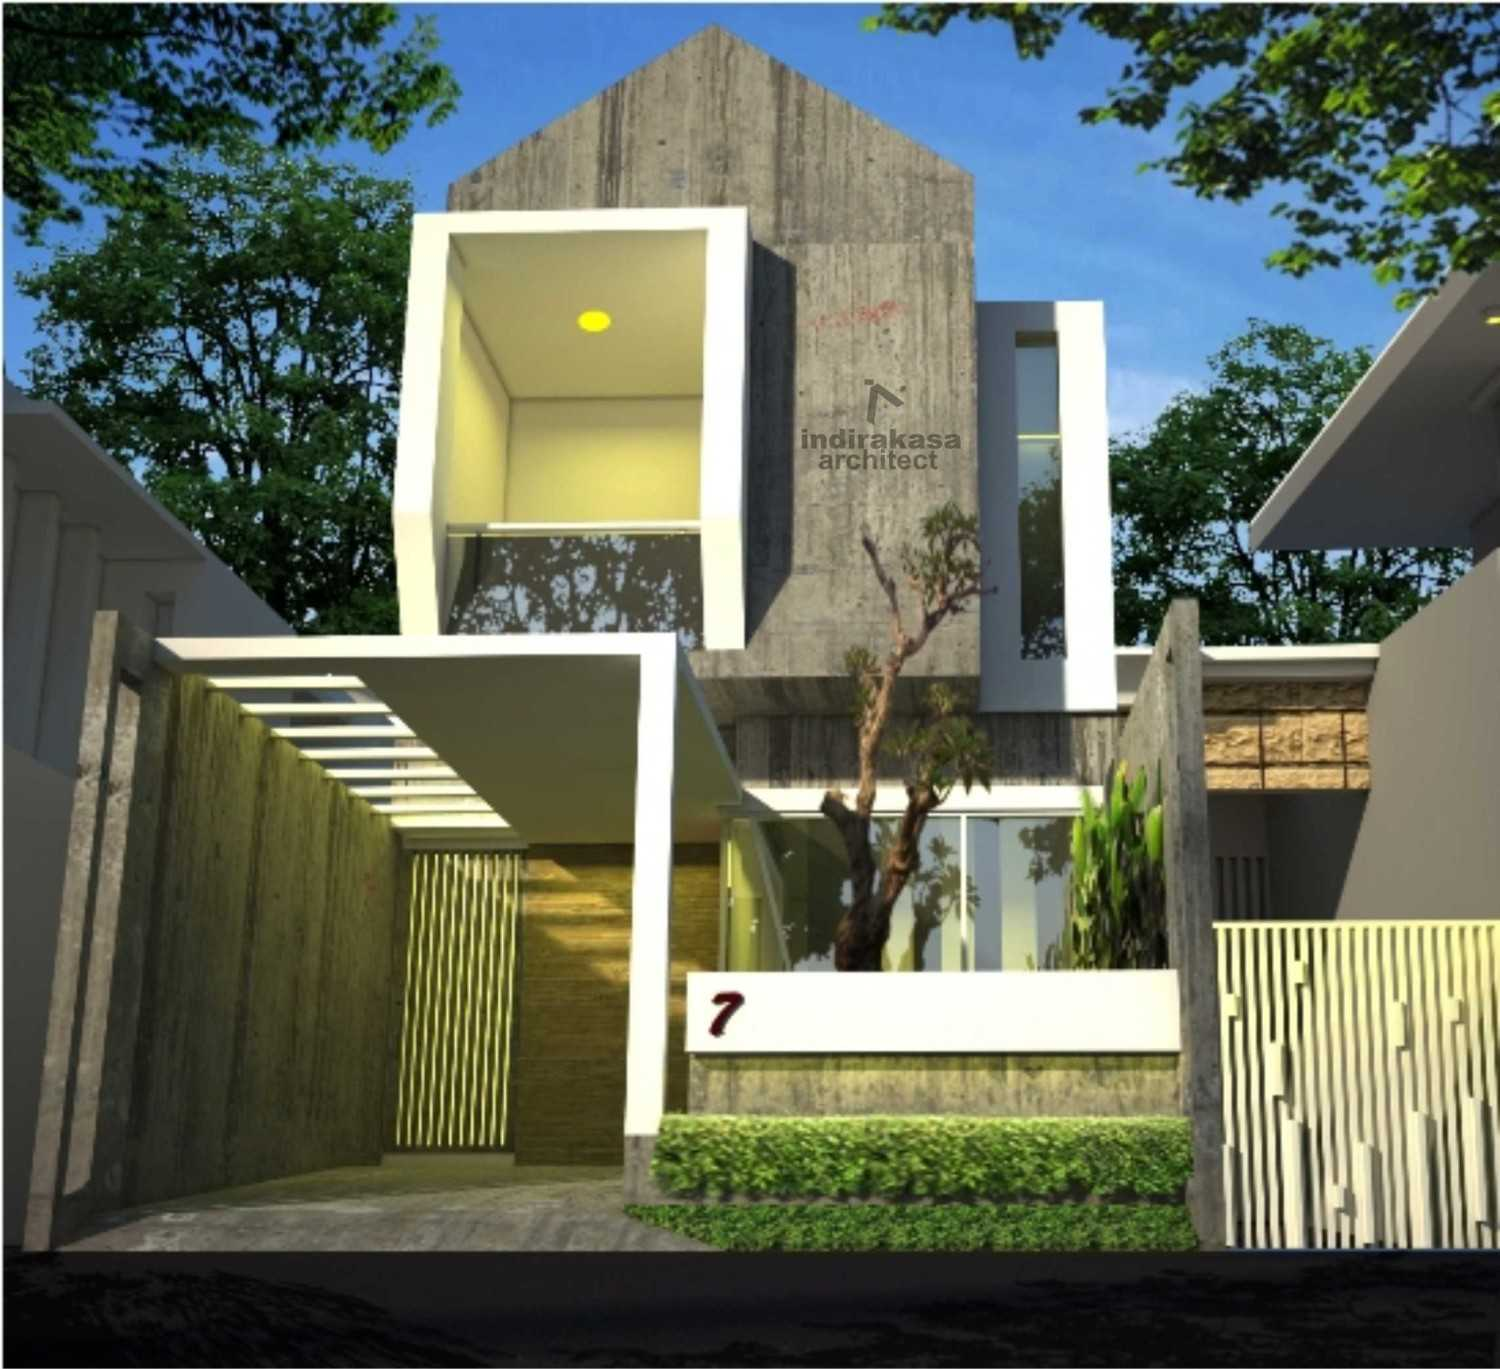 Jasa Design and Build Aditya Wijaya / Studio indirakasa di Boyolali